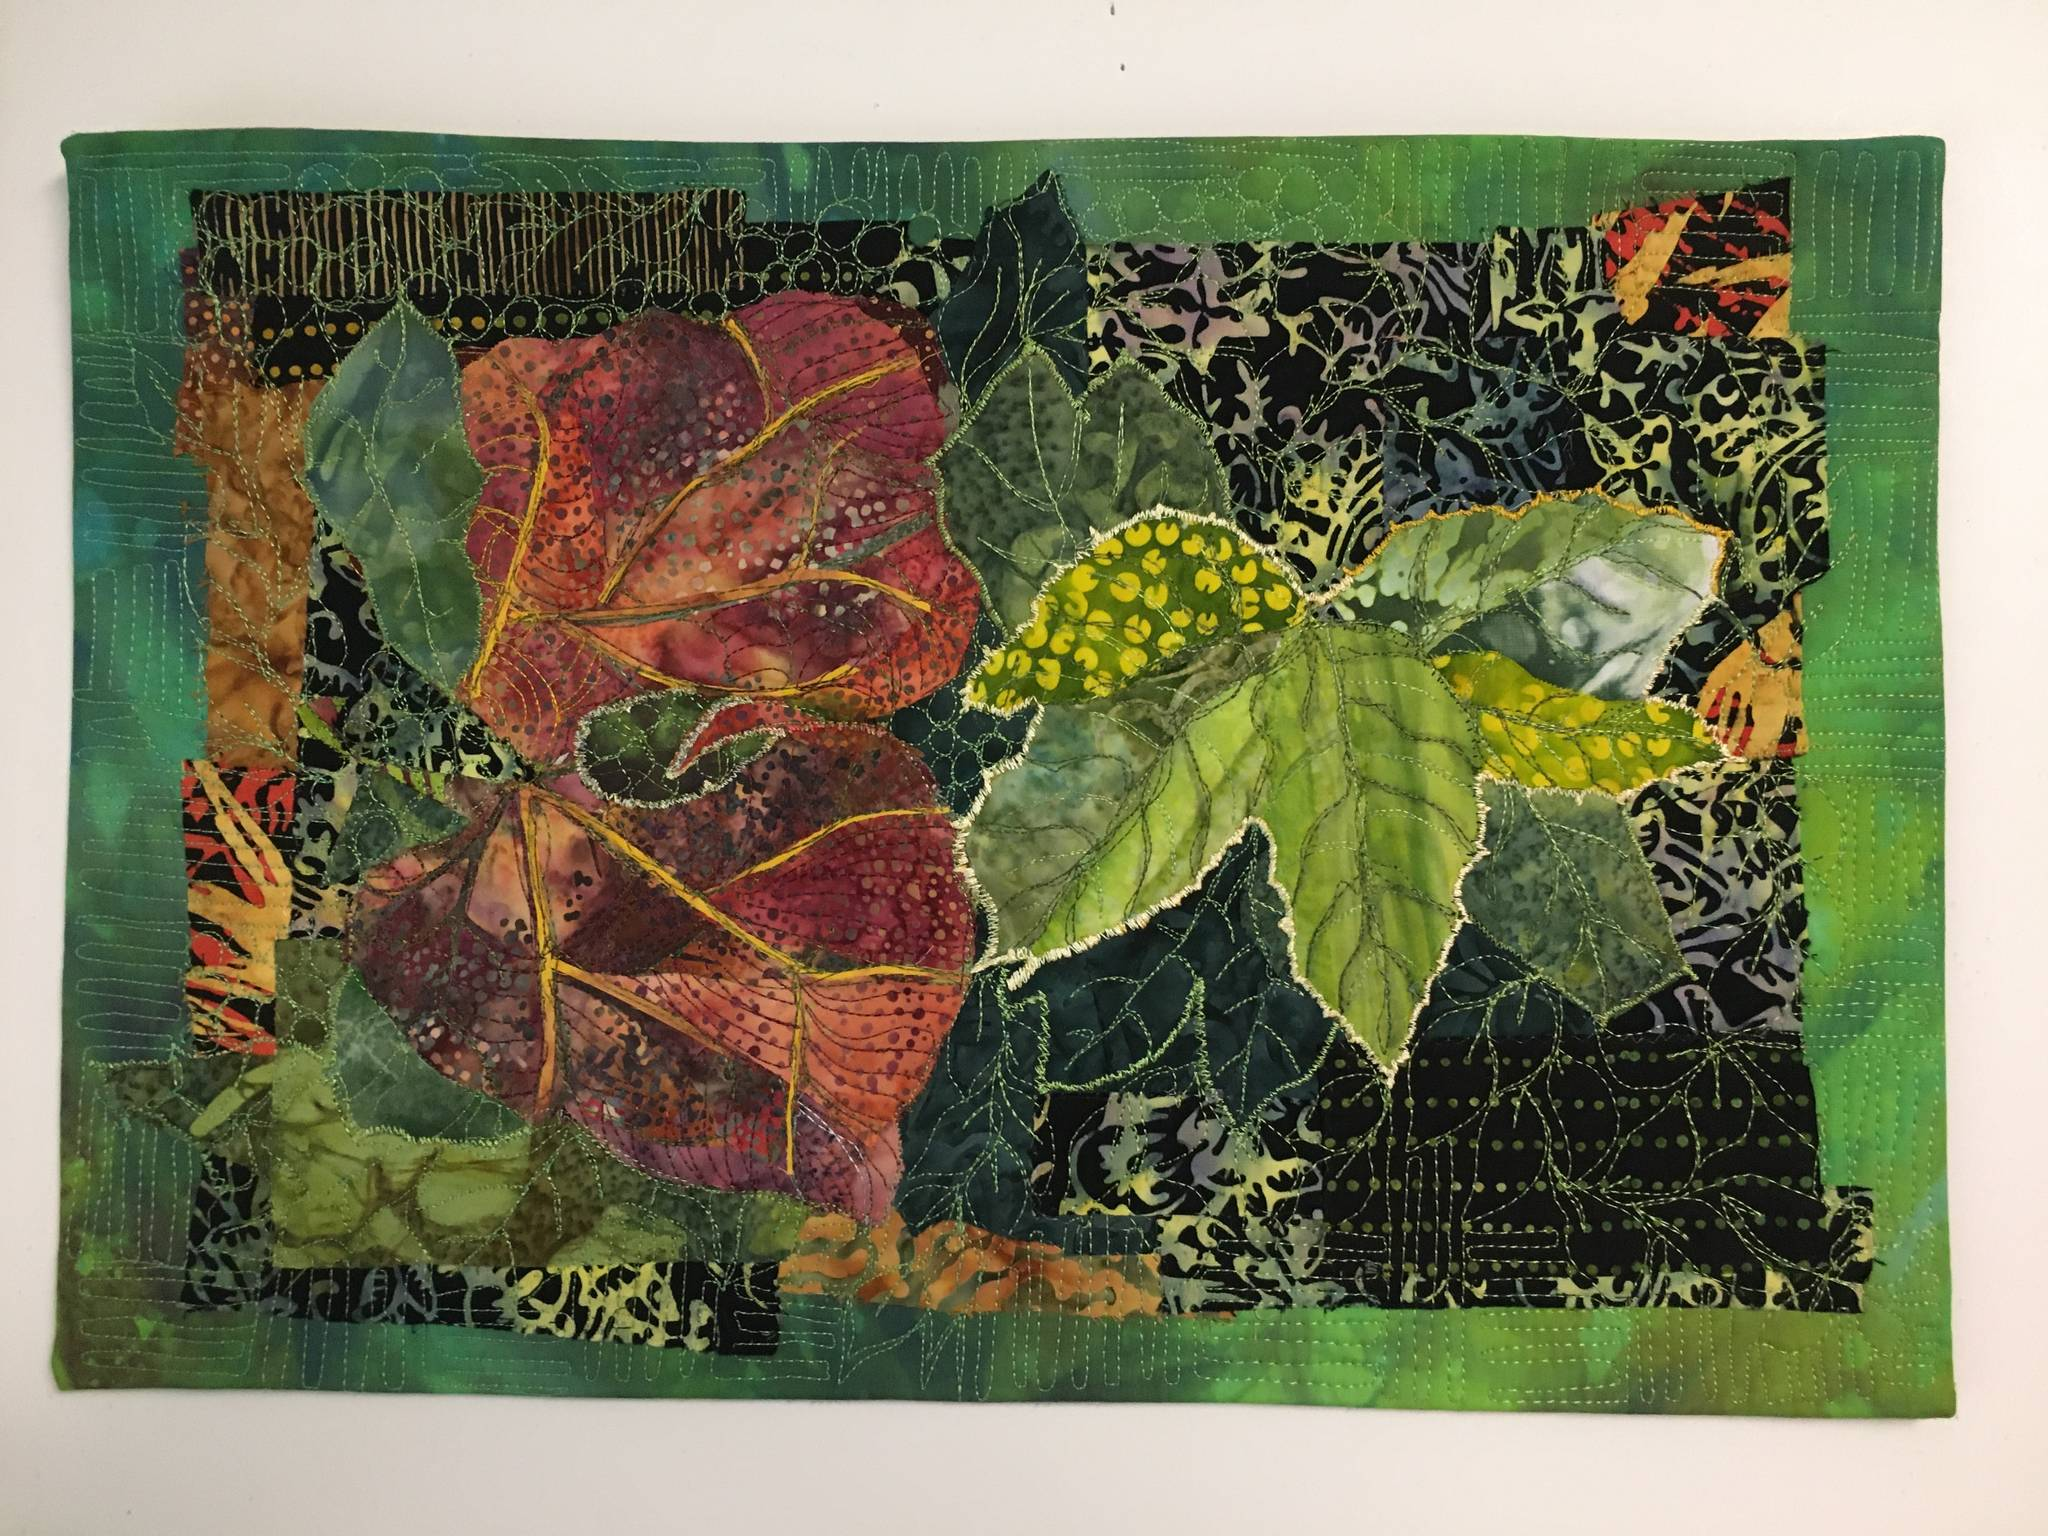 """""""Reaching for Light,"""" by Liisa Fagerlund, a member of the North Peninsula chapter of the Surface Design Association, is on display through October at the """"Farm. Fresh. Art."""" exhibit in Port Townsend. Submitted art"""